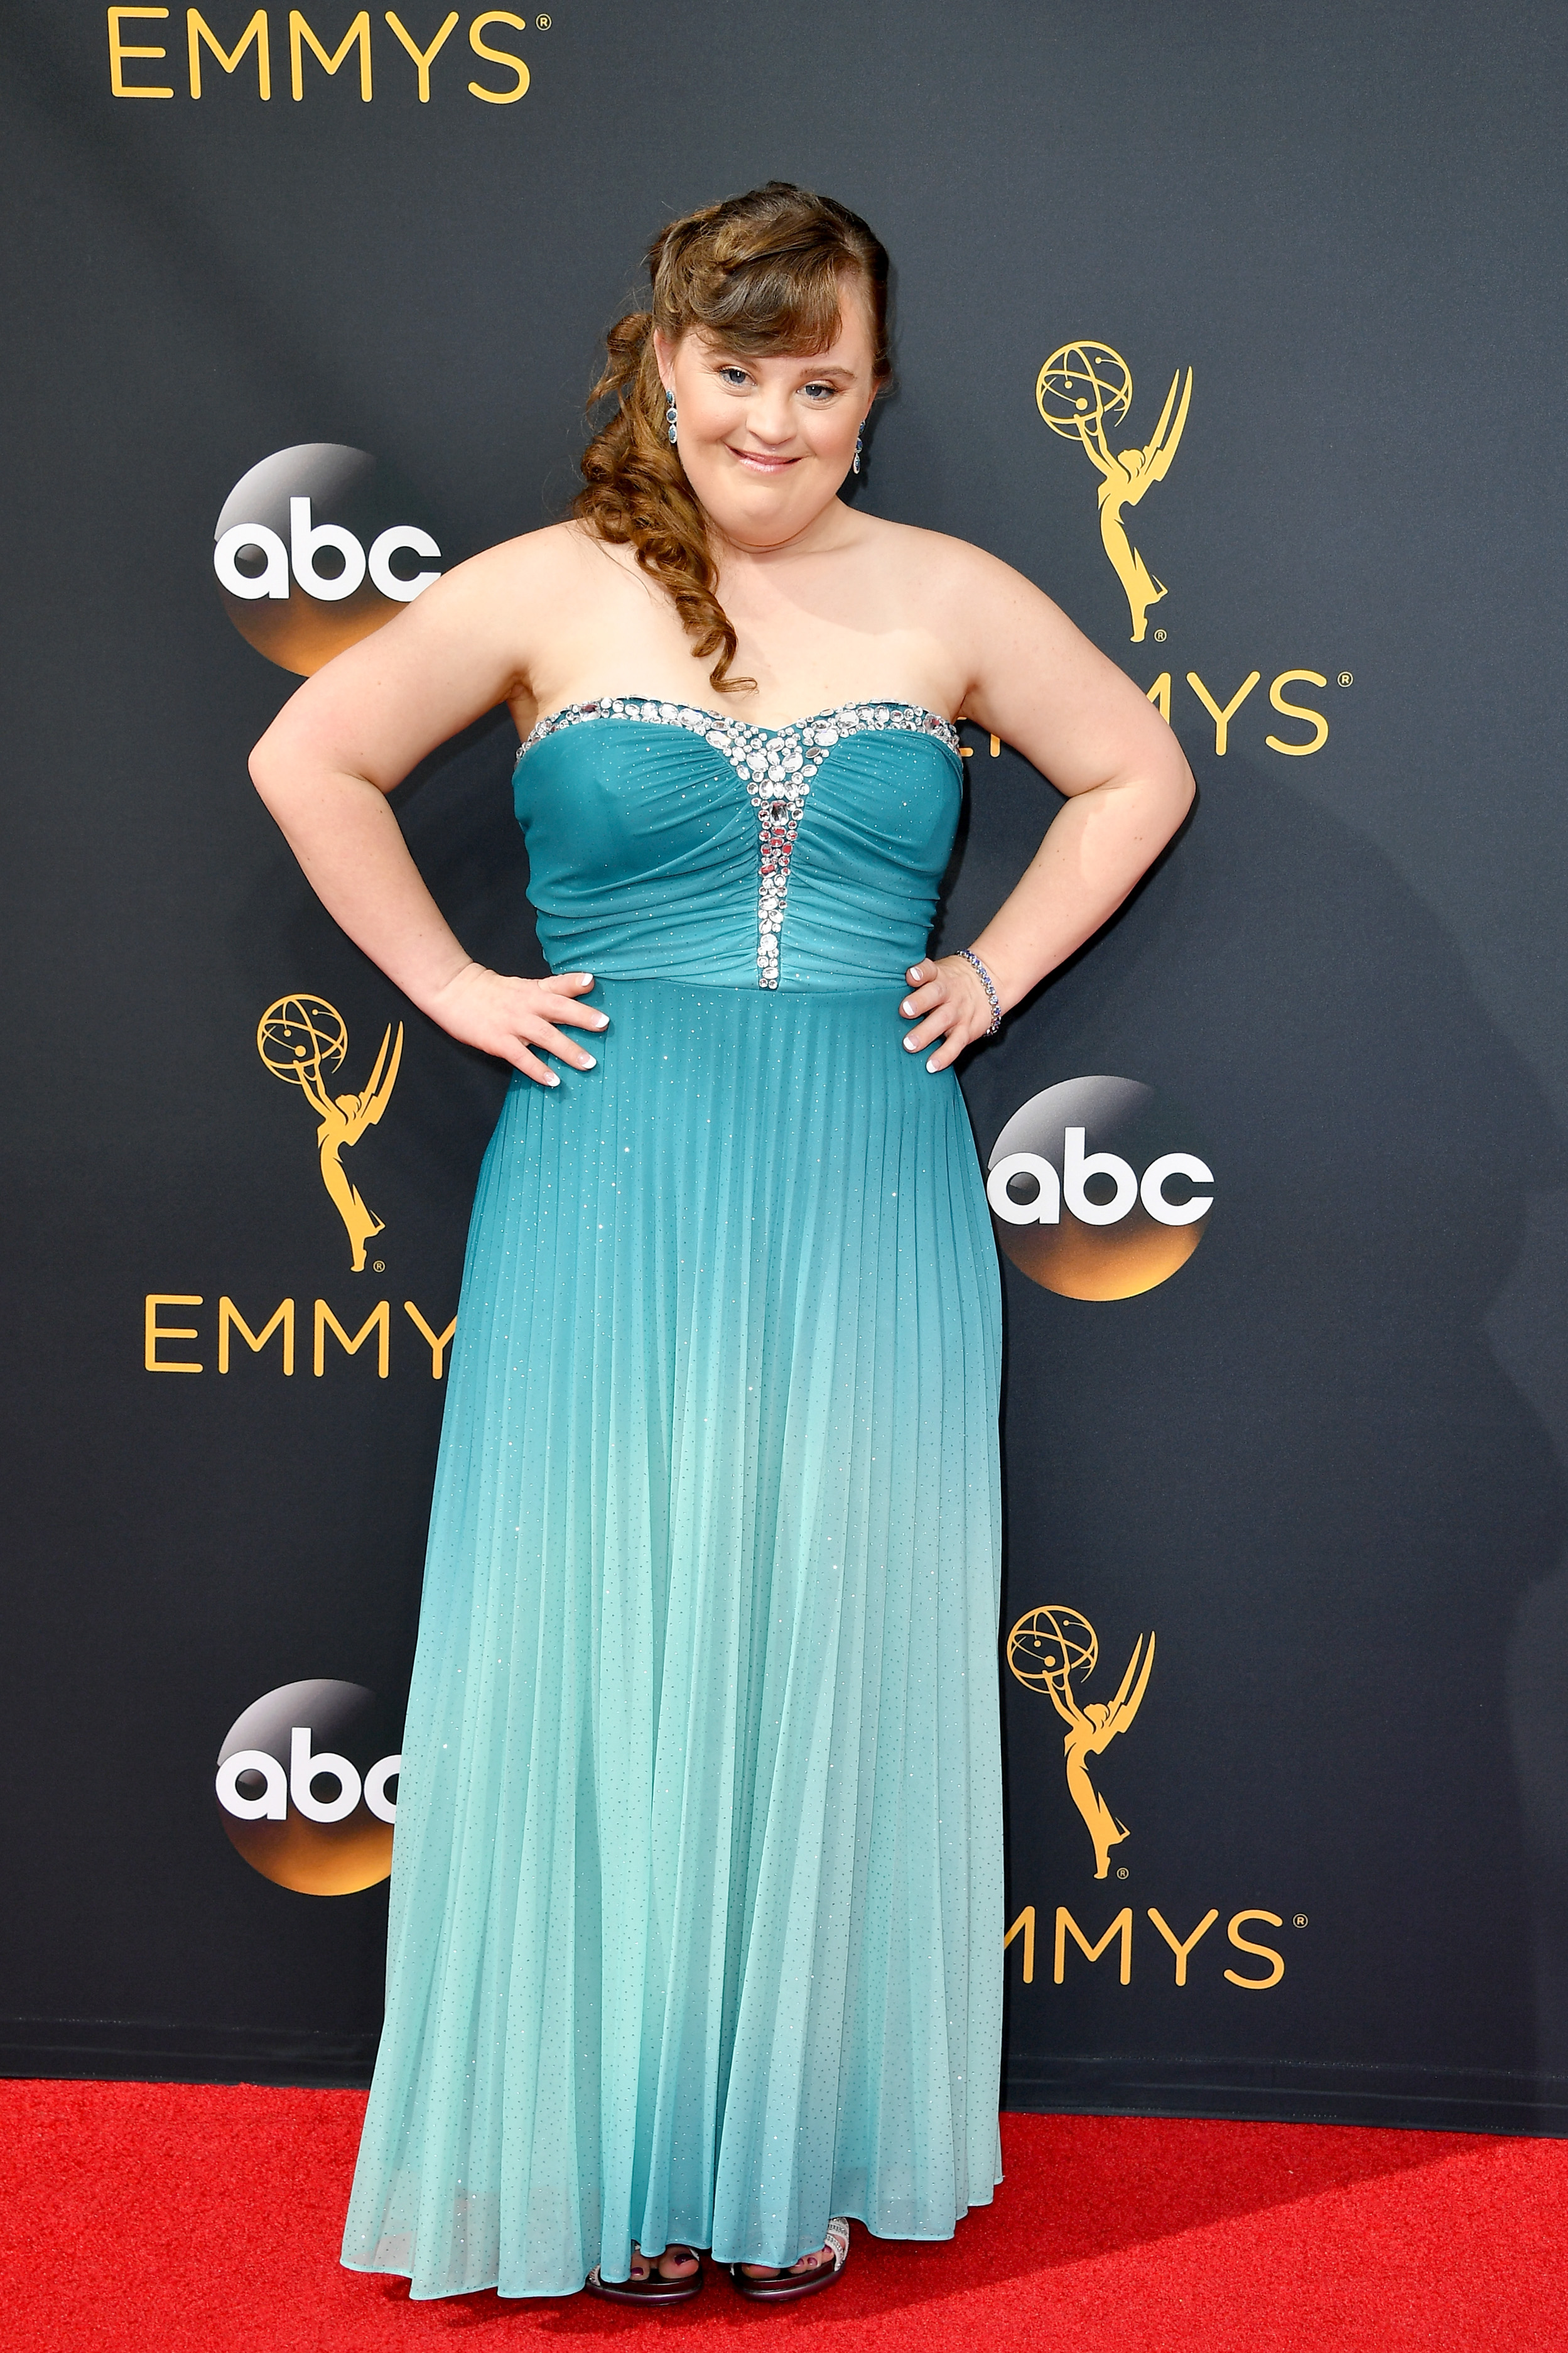 Jamie Brewer arrives at the 68th Annual Primetime Emmy Awards at Microsoft Theater on Sept. 18, 2016 in Los Angeles.